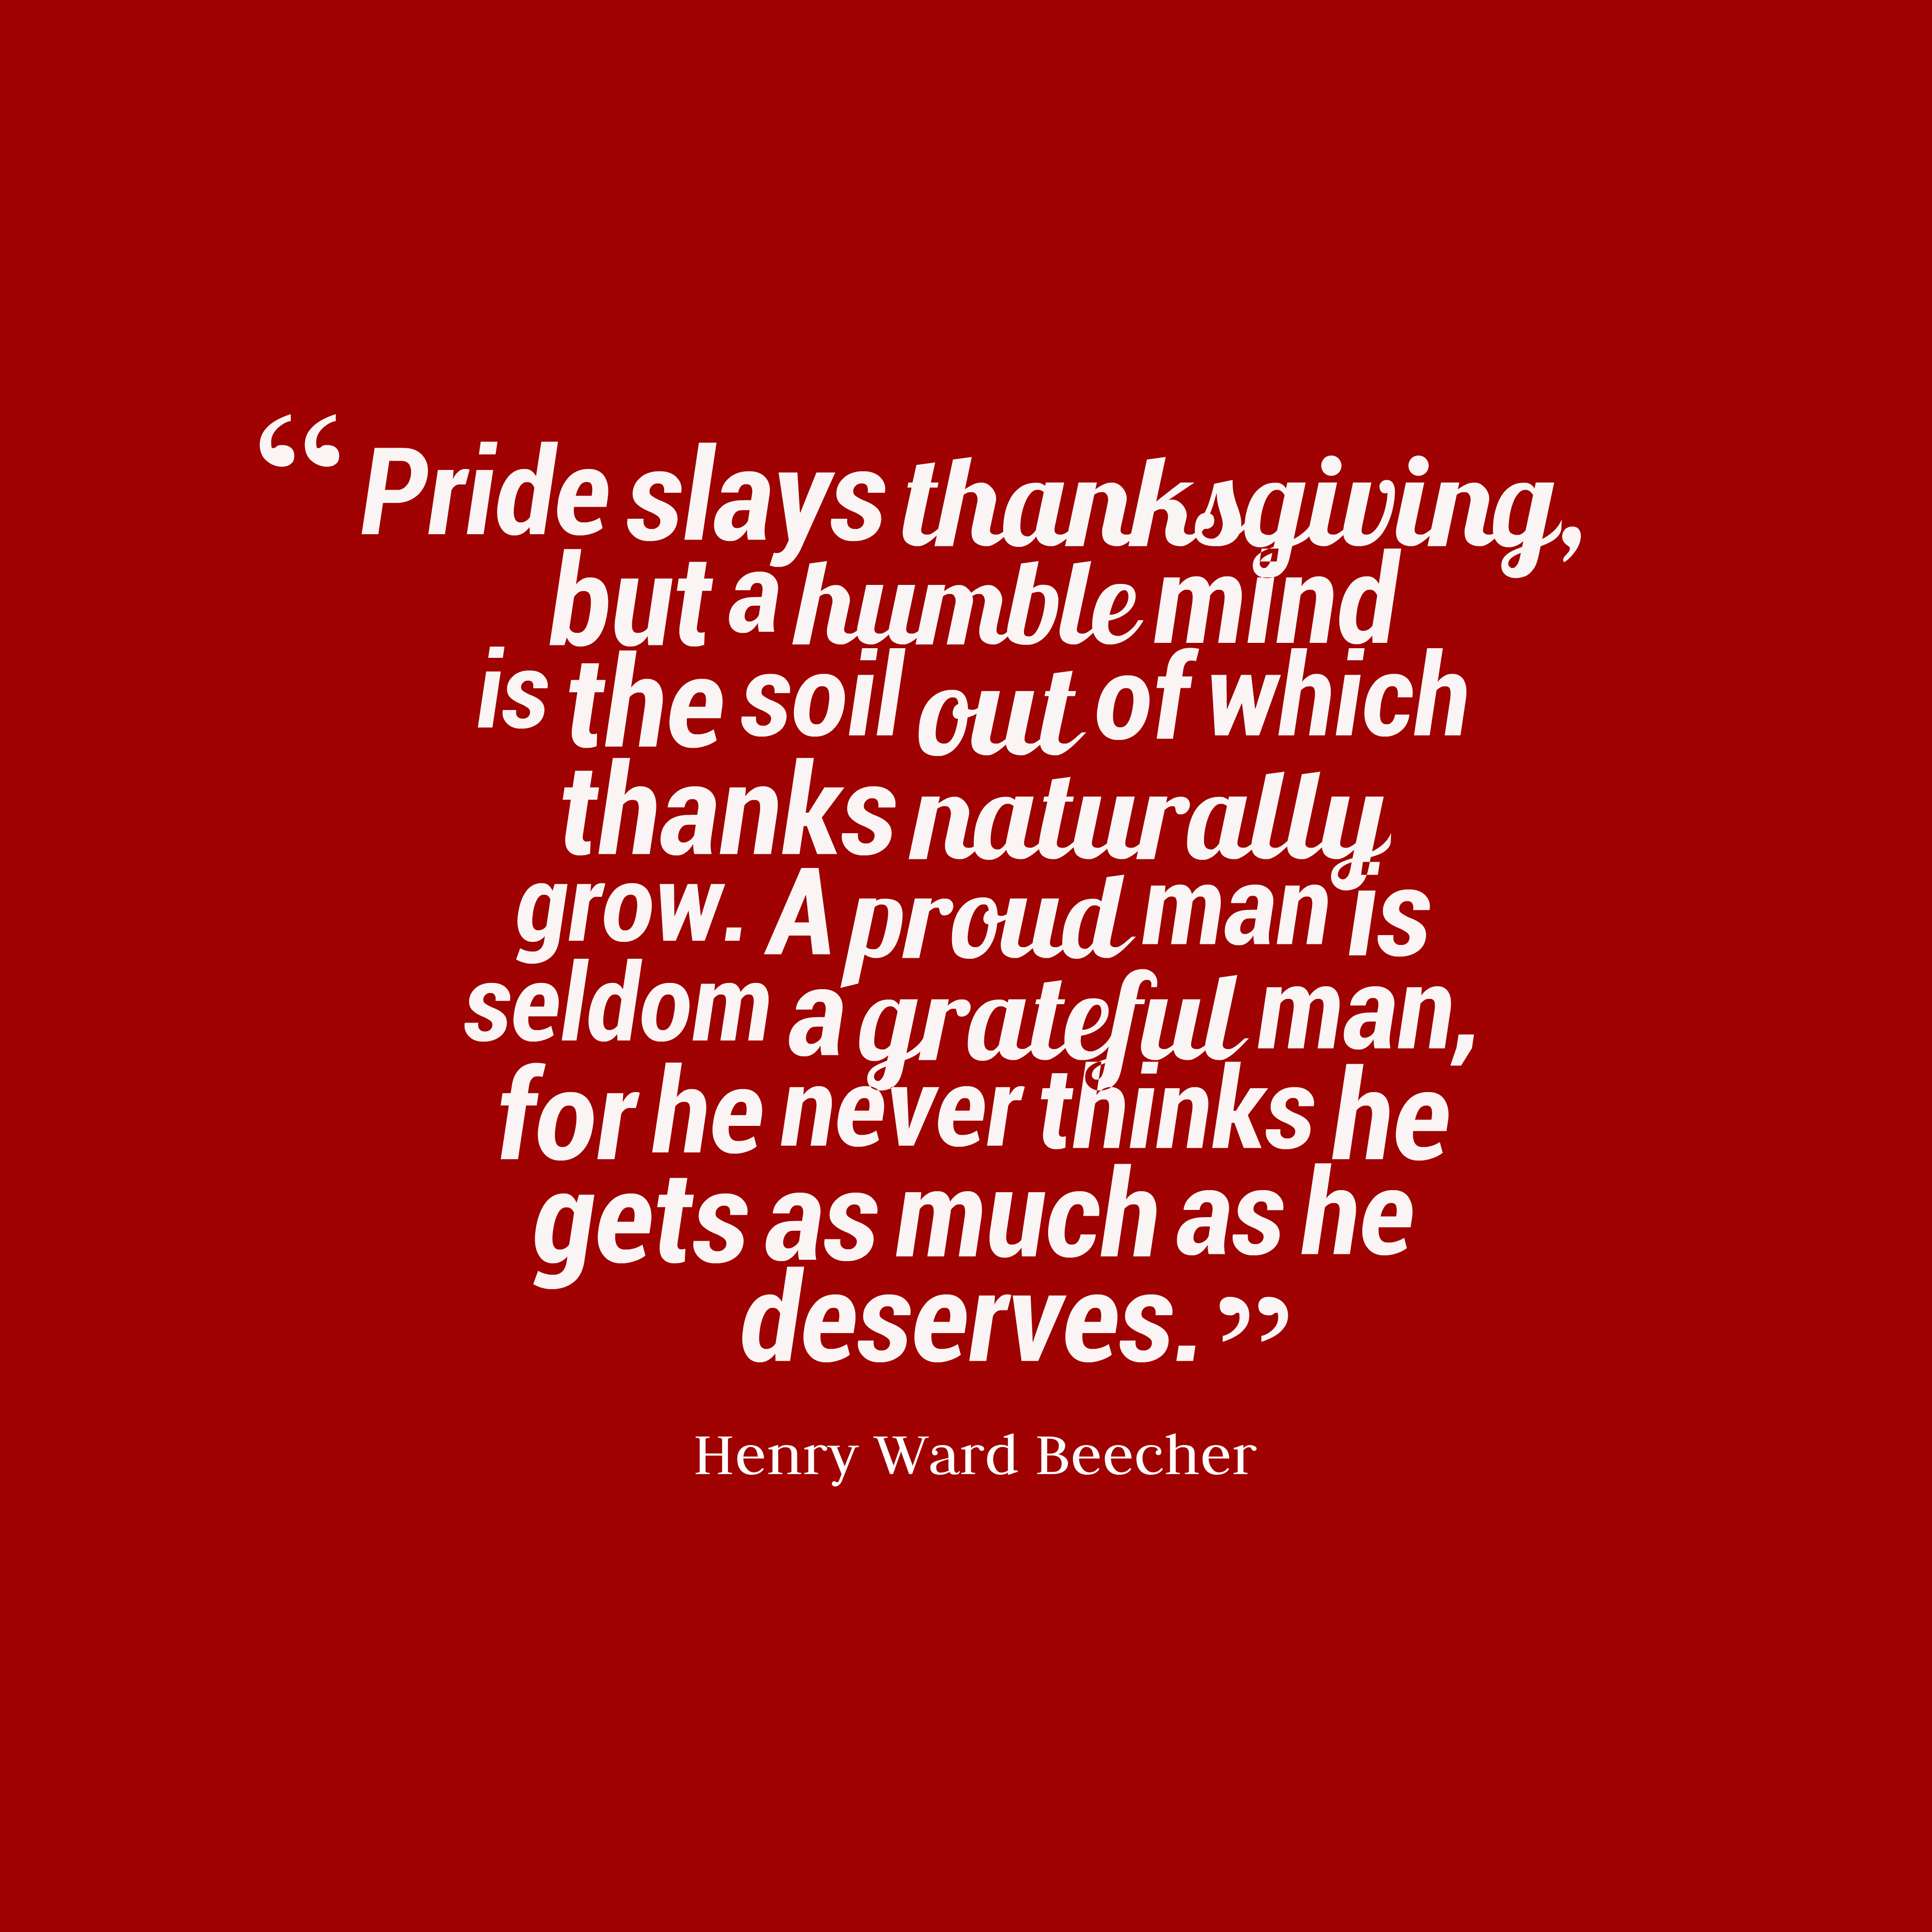 Quotes image of Pride slays thanksgiving, but a humble mind is the soil out of which thanks naturally grow. A proud man is seldom a grateful man, for he never thinks he gets as much as he deserves.